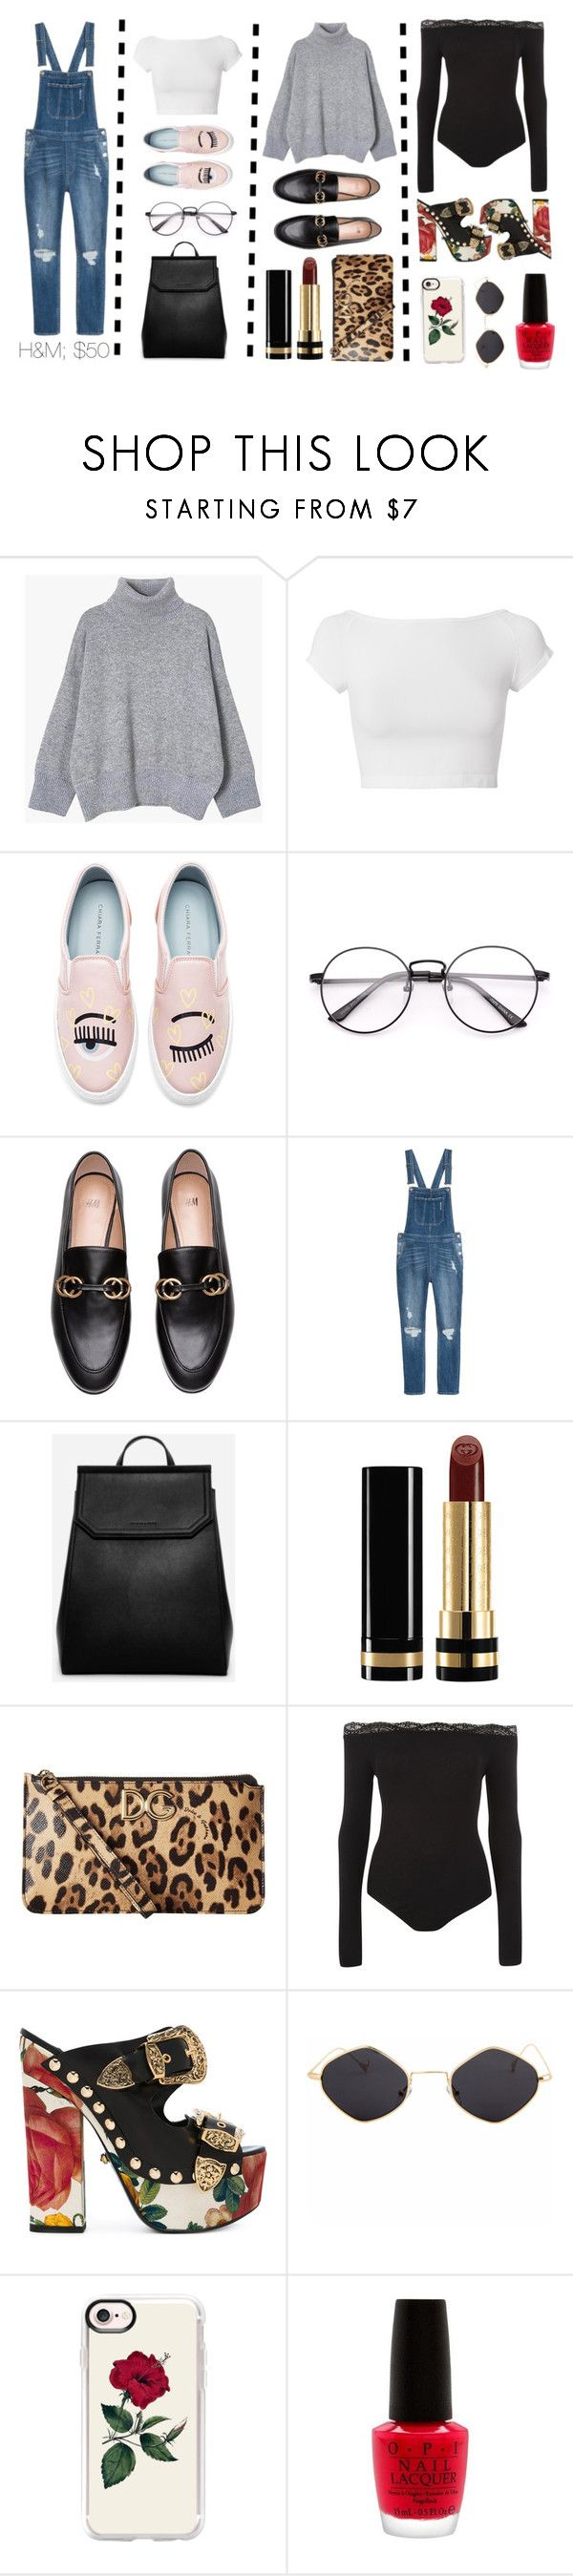 """""""#1: Three Ways To Wear Overalls"""" by sleepyaf ❤ liked on Polyvore featuring Helmut Lang, Chiara Ferragni, CHARLES & KEITH, Gucci, Dolce&Gabbana, Topshop, FAUSTO PUGLISI, Casetify and OPI"""